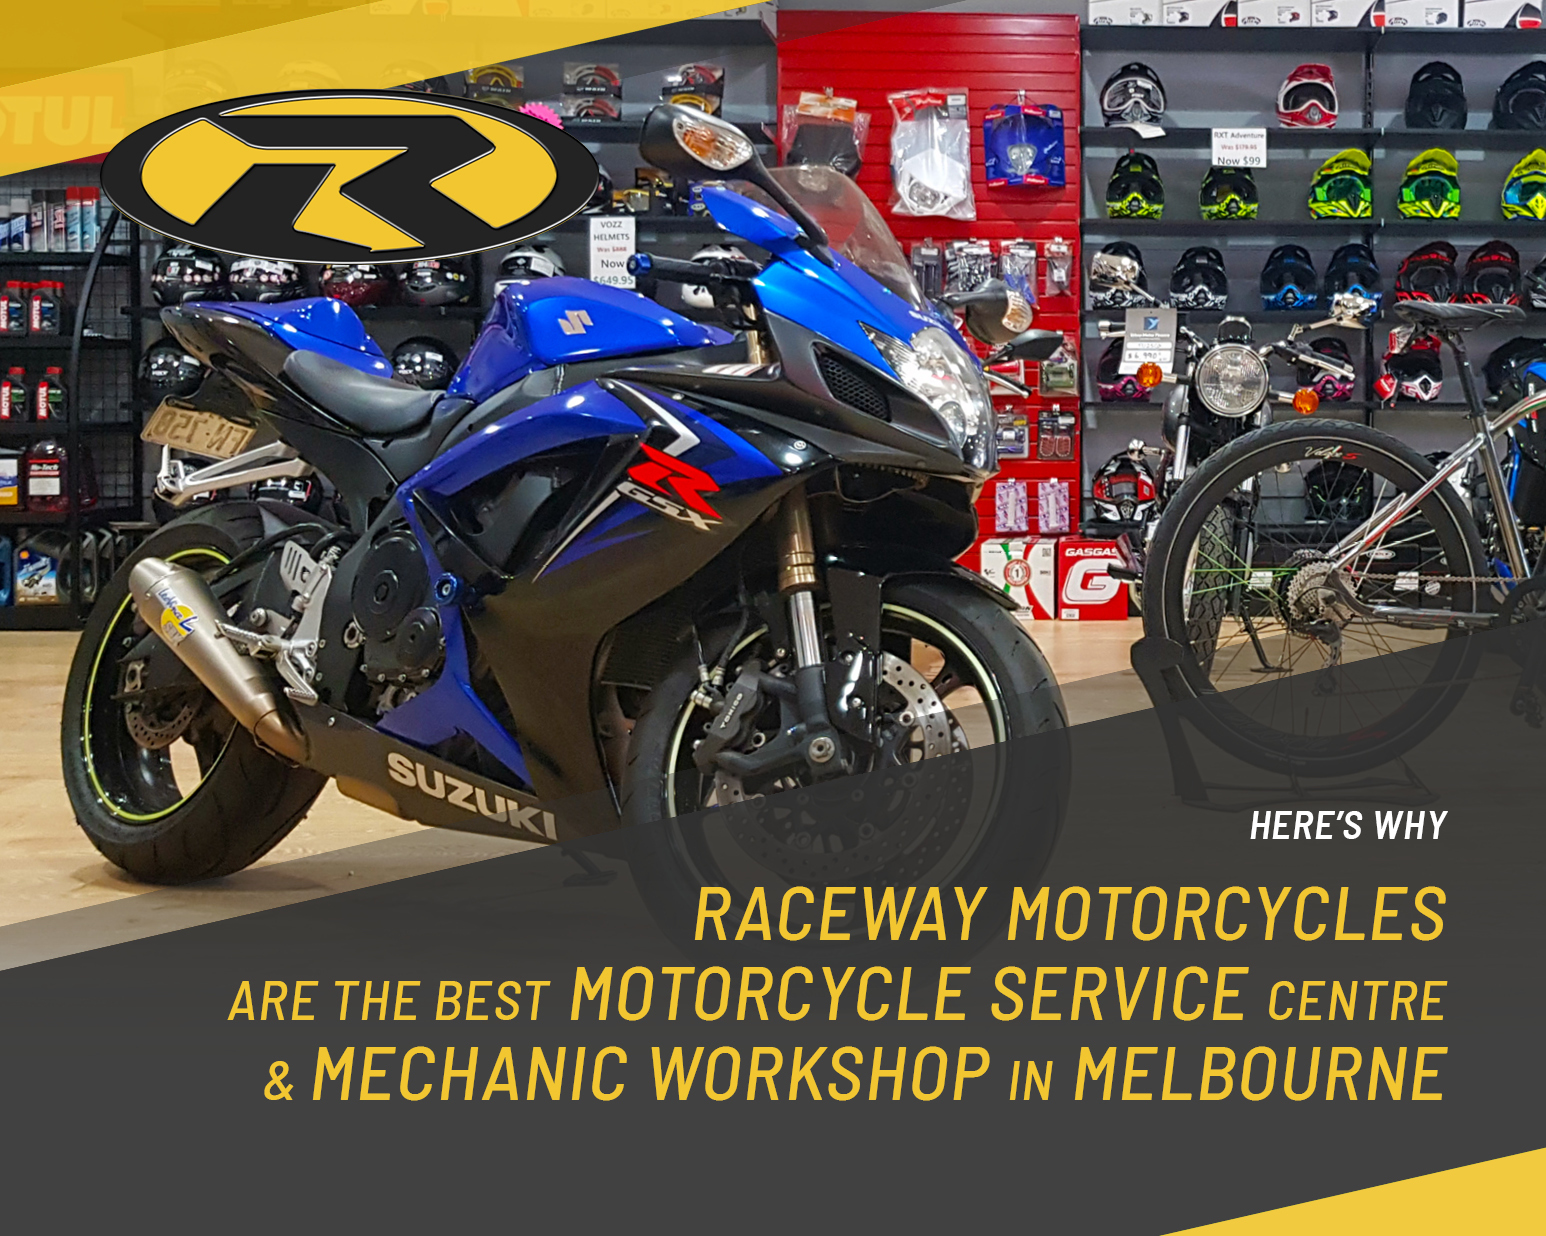 Here's Why Raceway Motorcycles Are the Best Motorcycle Service Centre & Mechanic Workshop in Melbourne